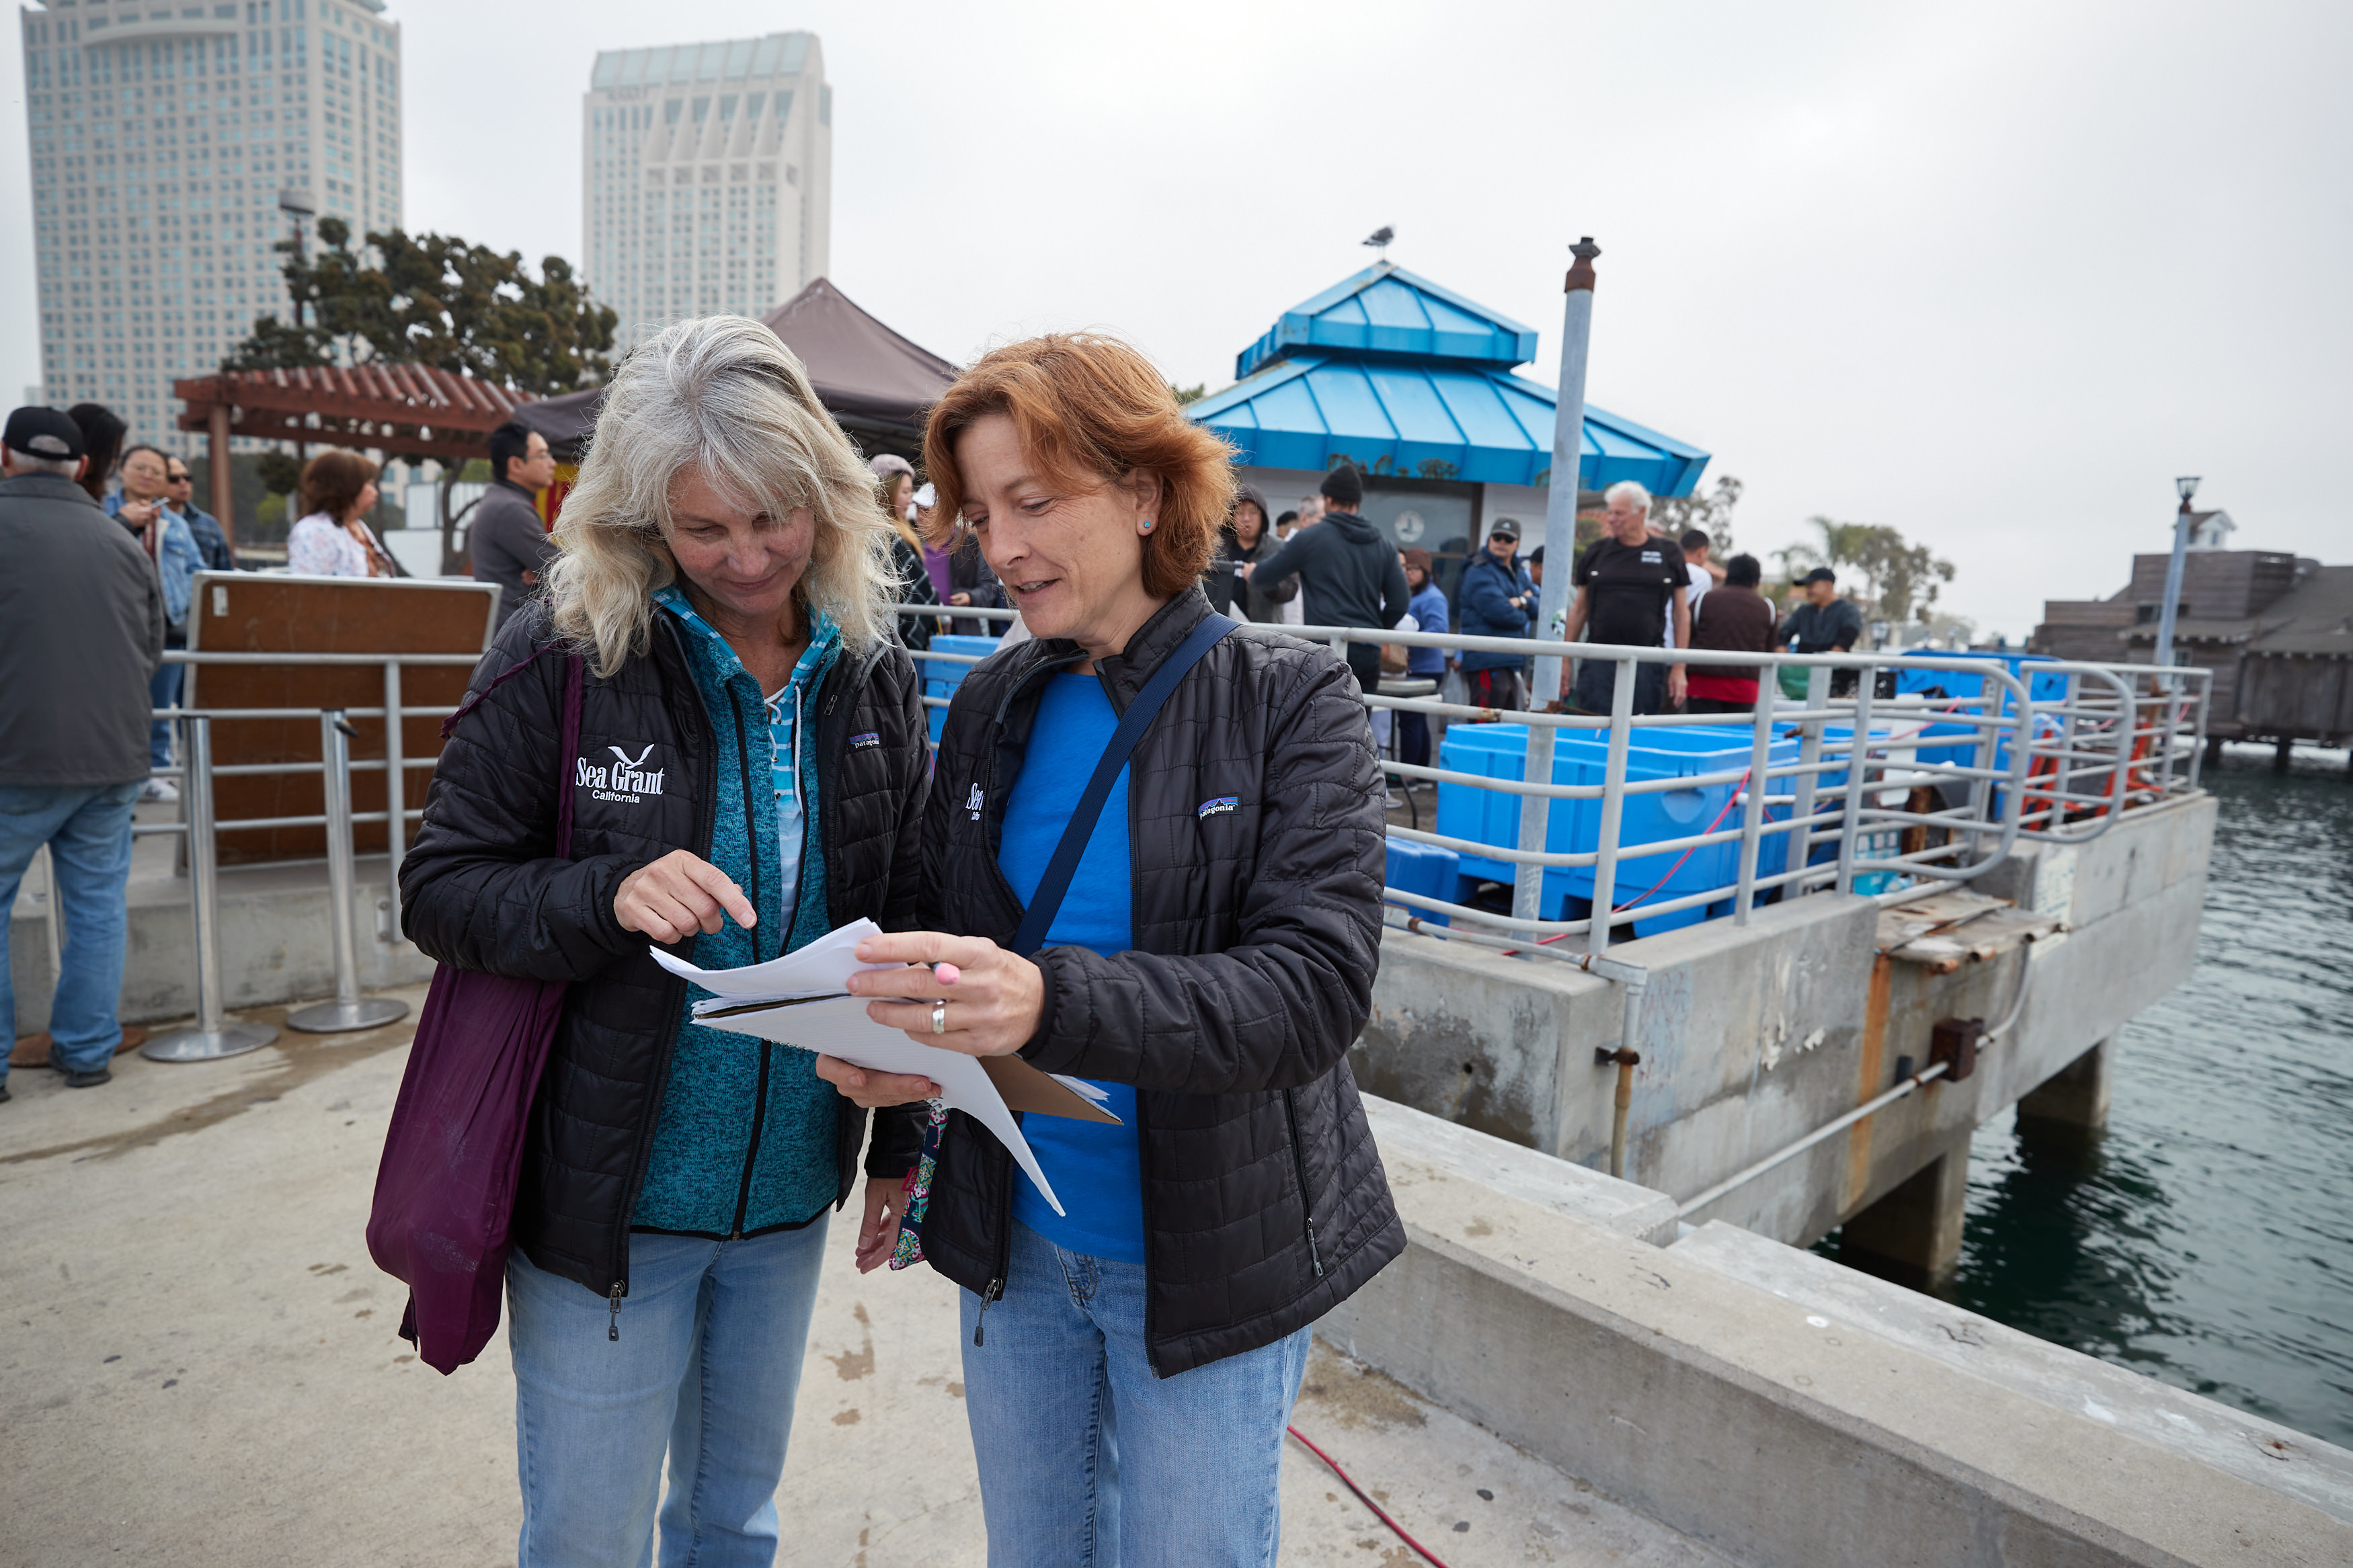 Extension specialists Theresa Talley and Carolynn Culver at the San Diego Tuna Harbor Dockside Market.Photo credit: Fred Greaves